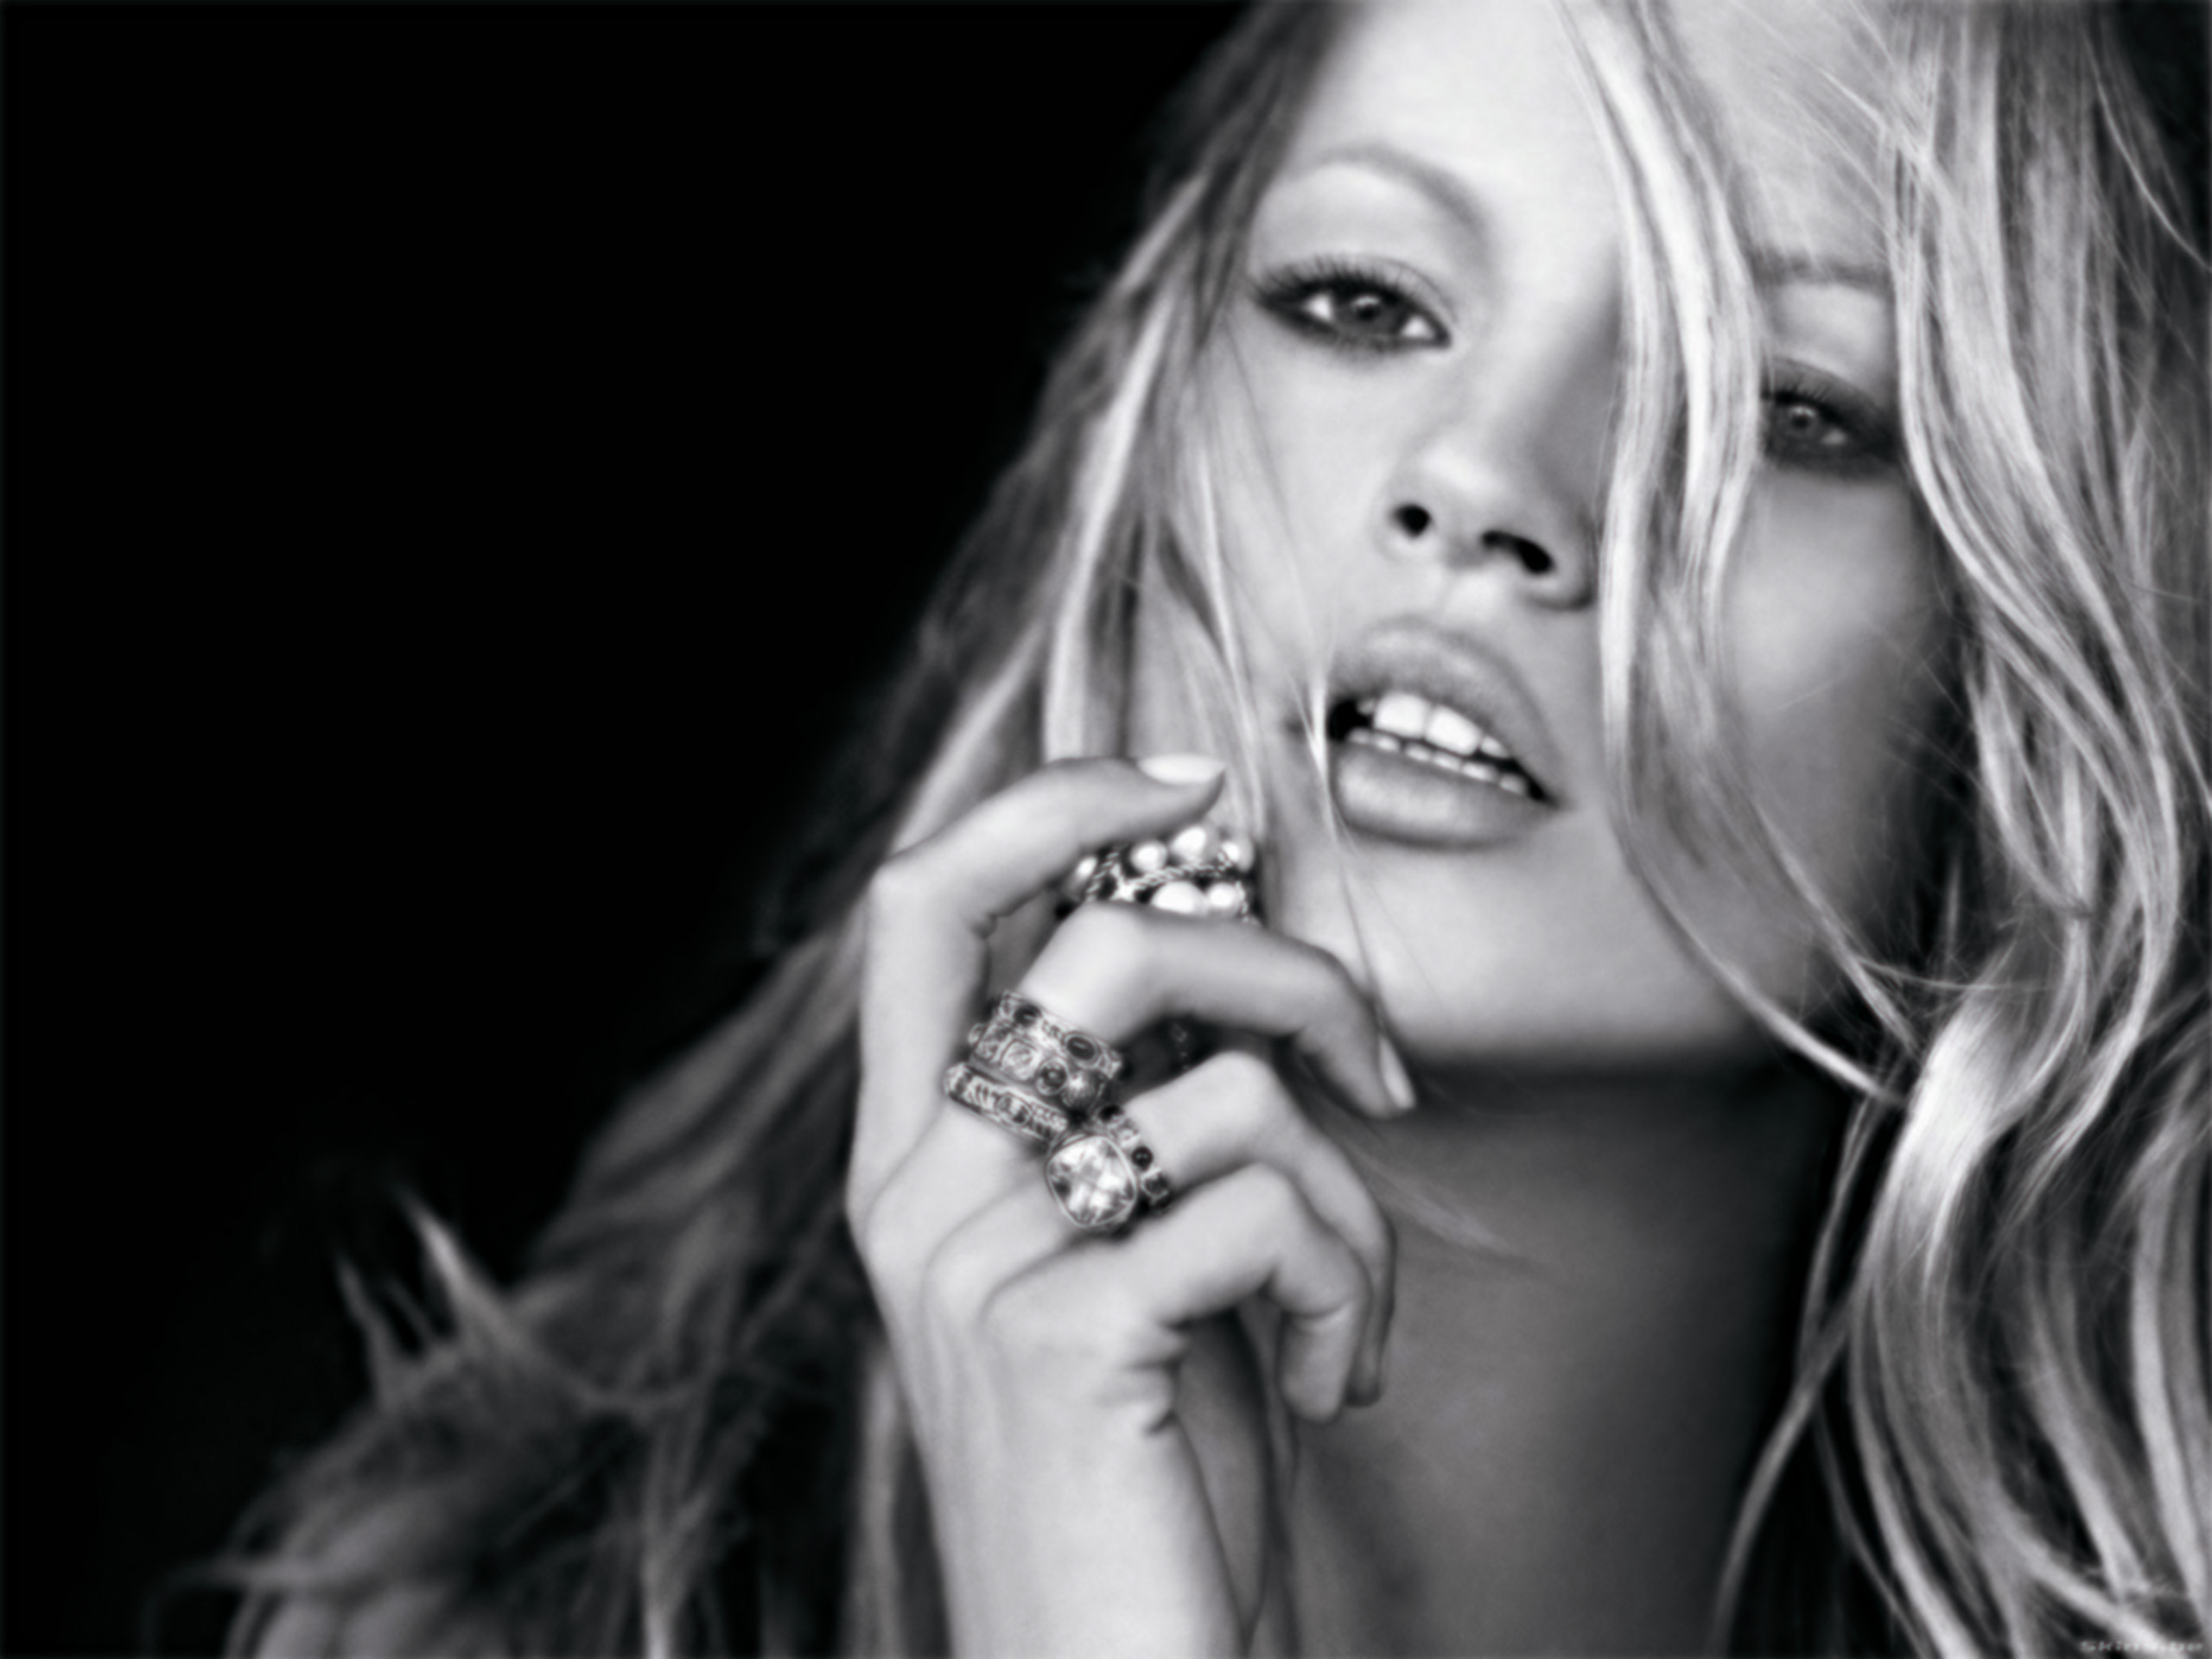 2560x1920 - Kate Moss Wallpapers 31